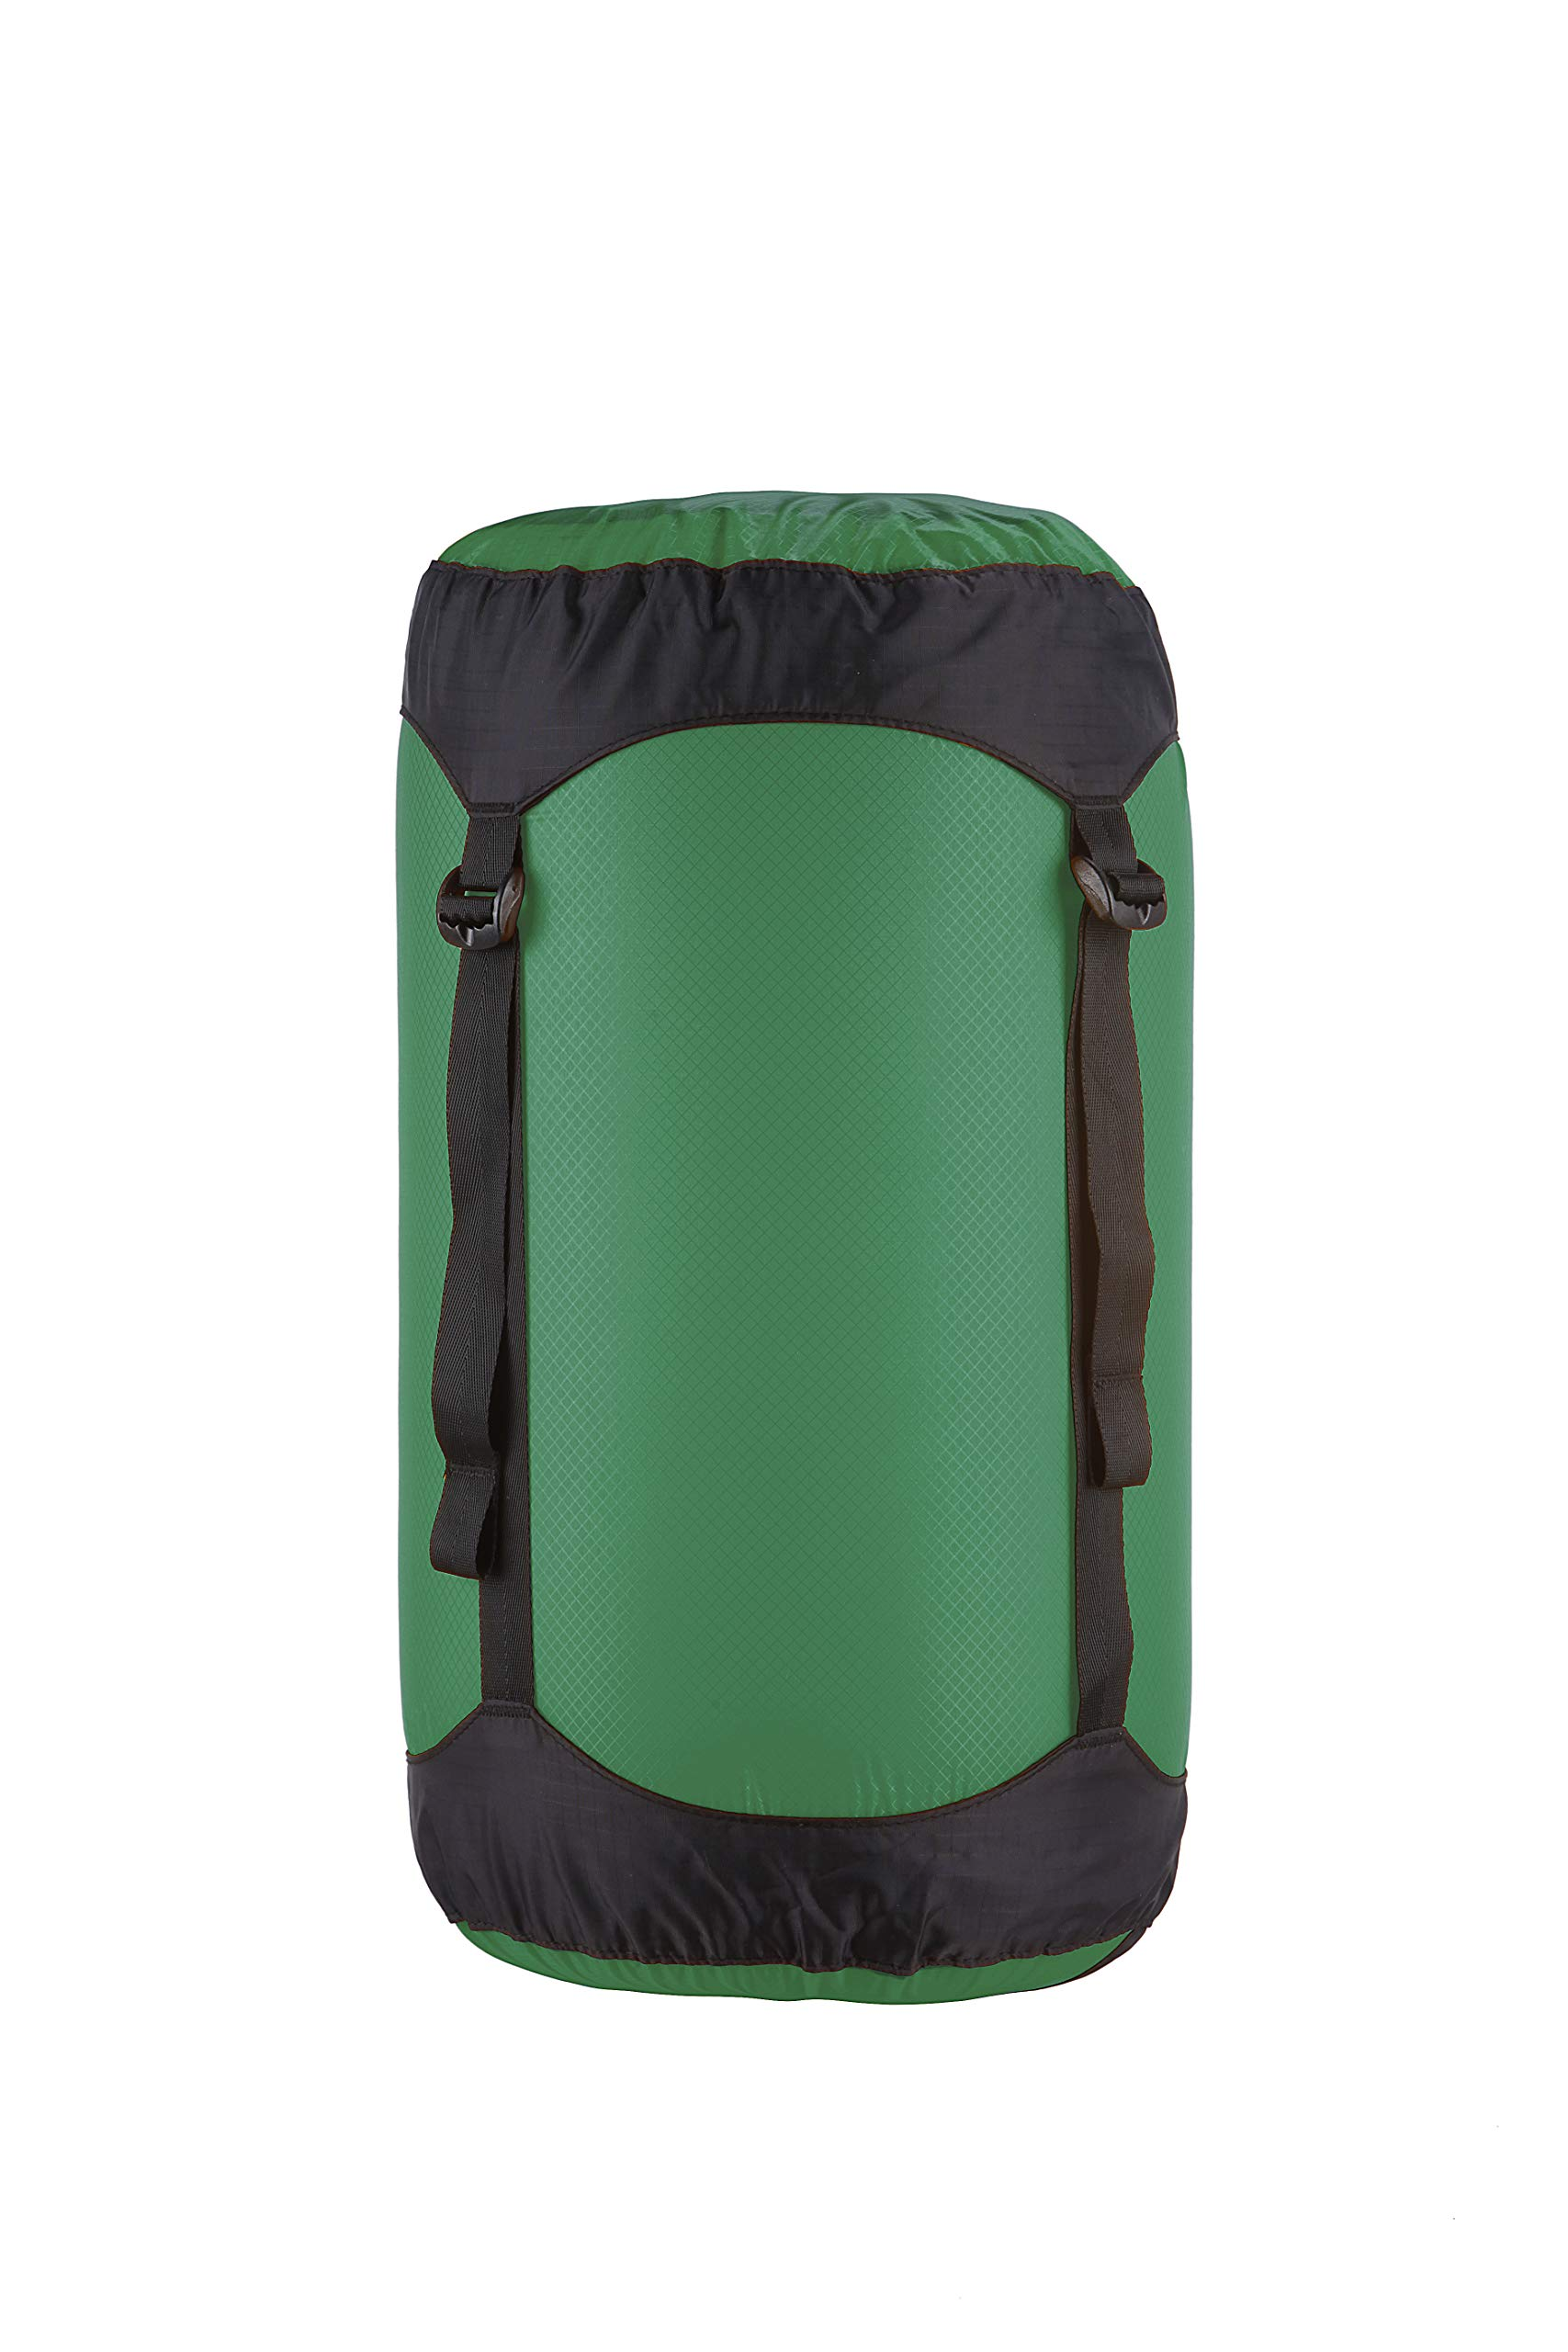 Sea to Summit Ultra-Sil Compression Sack, Forest Green, 14 Liter by Sea to Summit